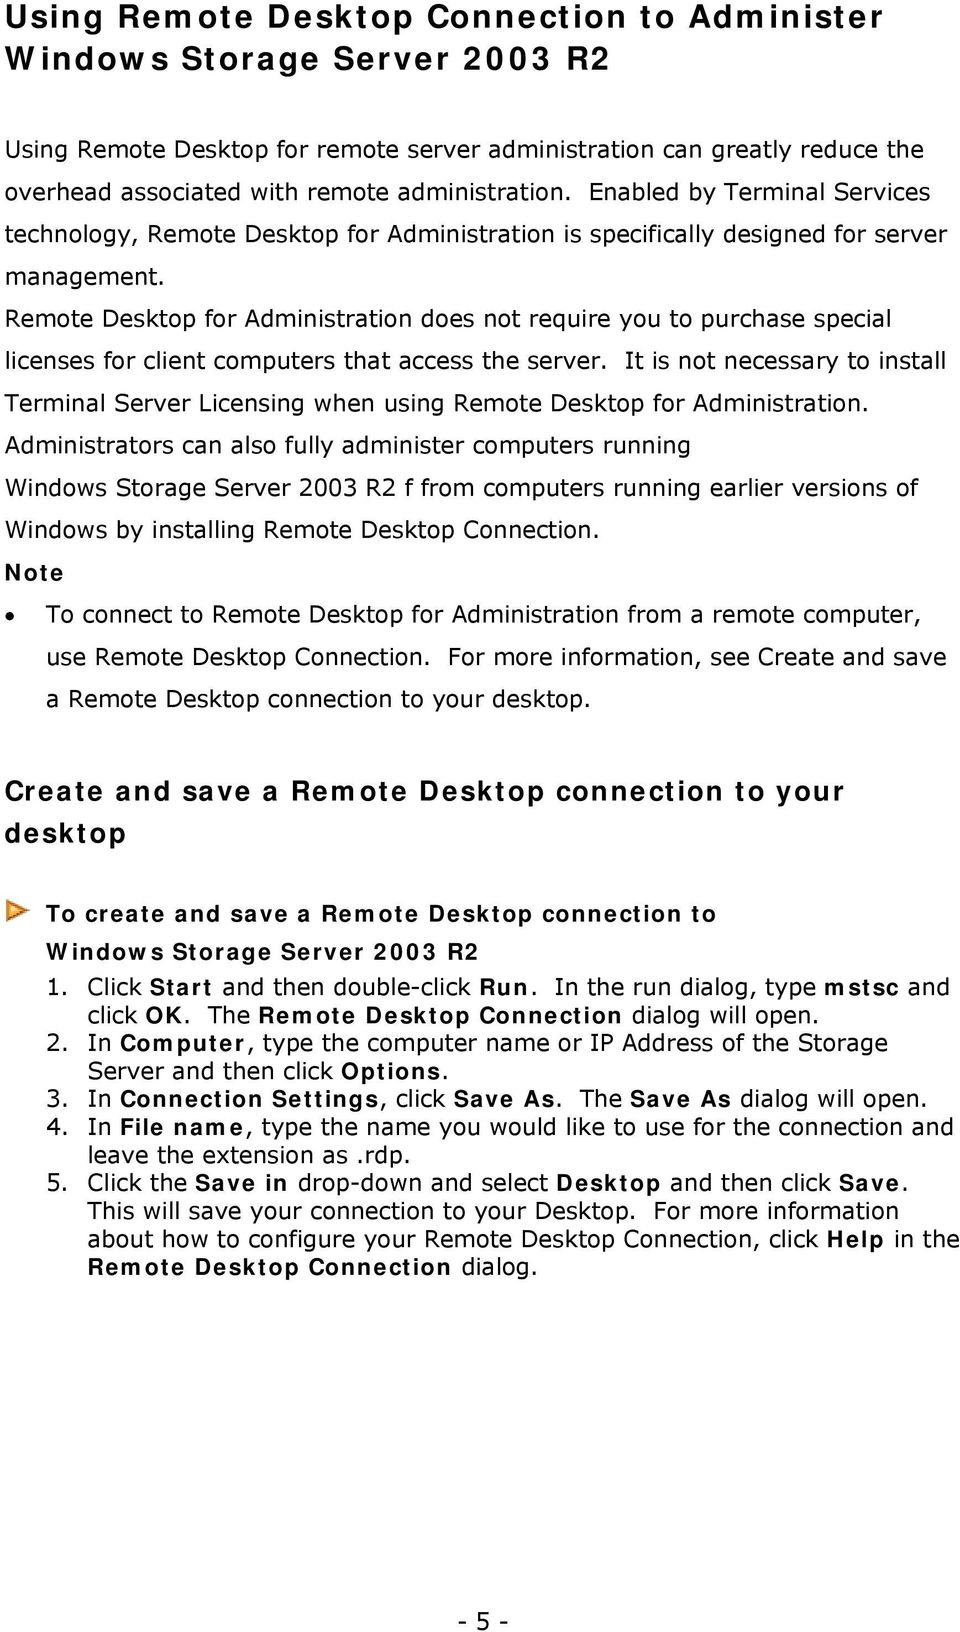 Remote Desktop for Administration does not require you to purchase special licenses for client computers that access the server.